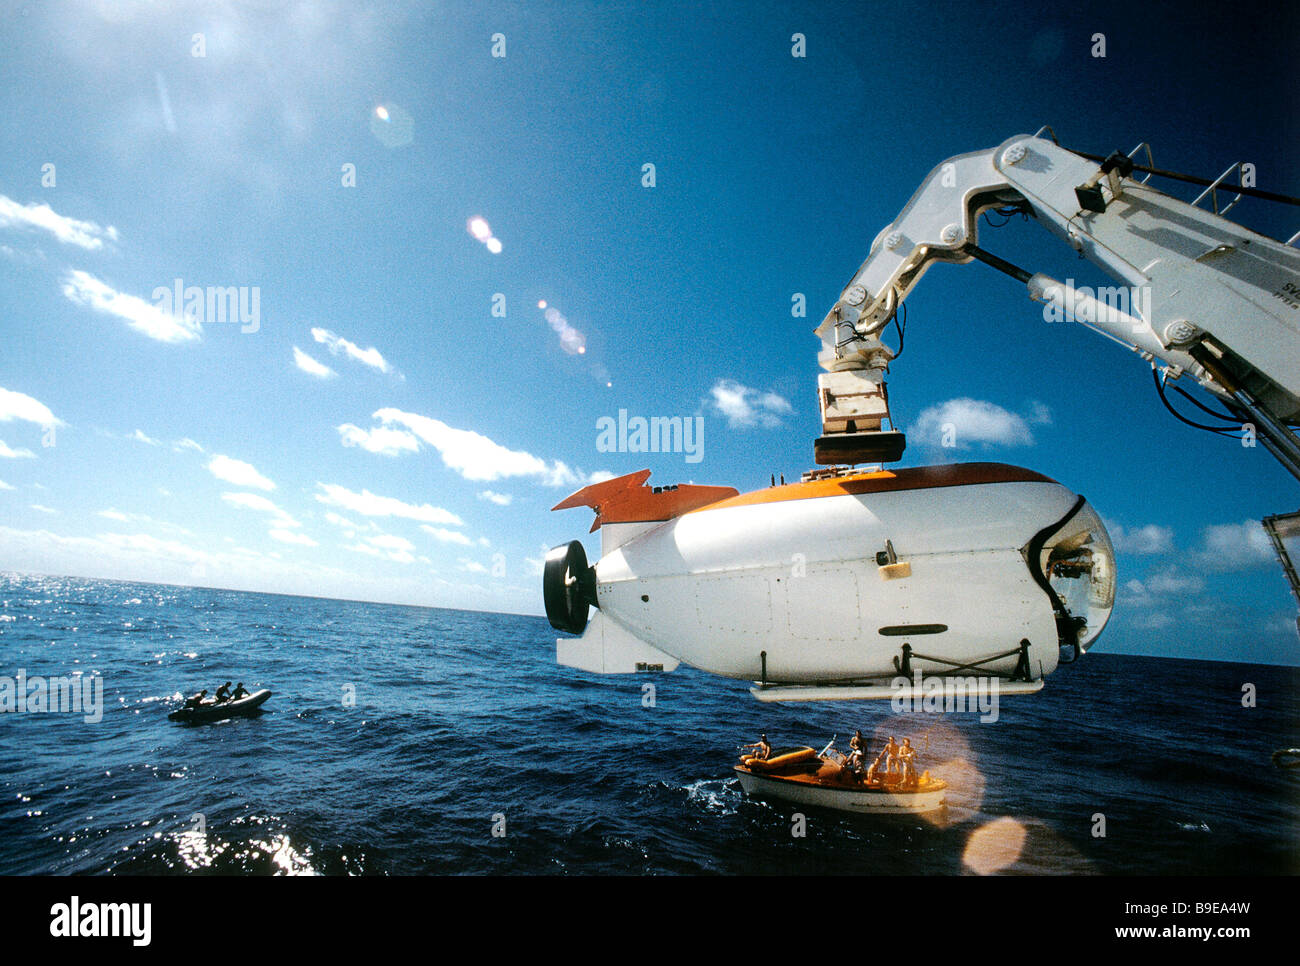 The state of the art Mir deep sea submersibles can dive to 6 000 meters and reach 99 of the World Ocean s bottom - Stock Image